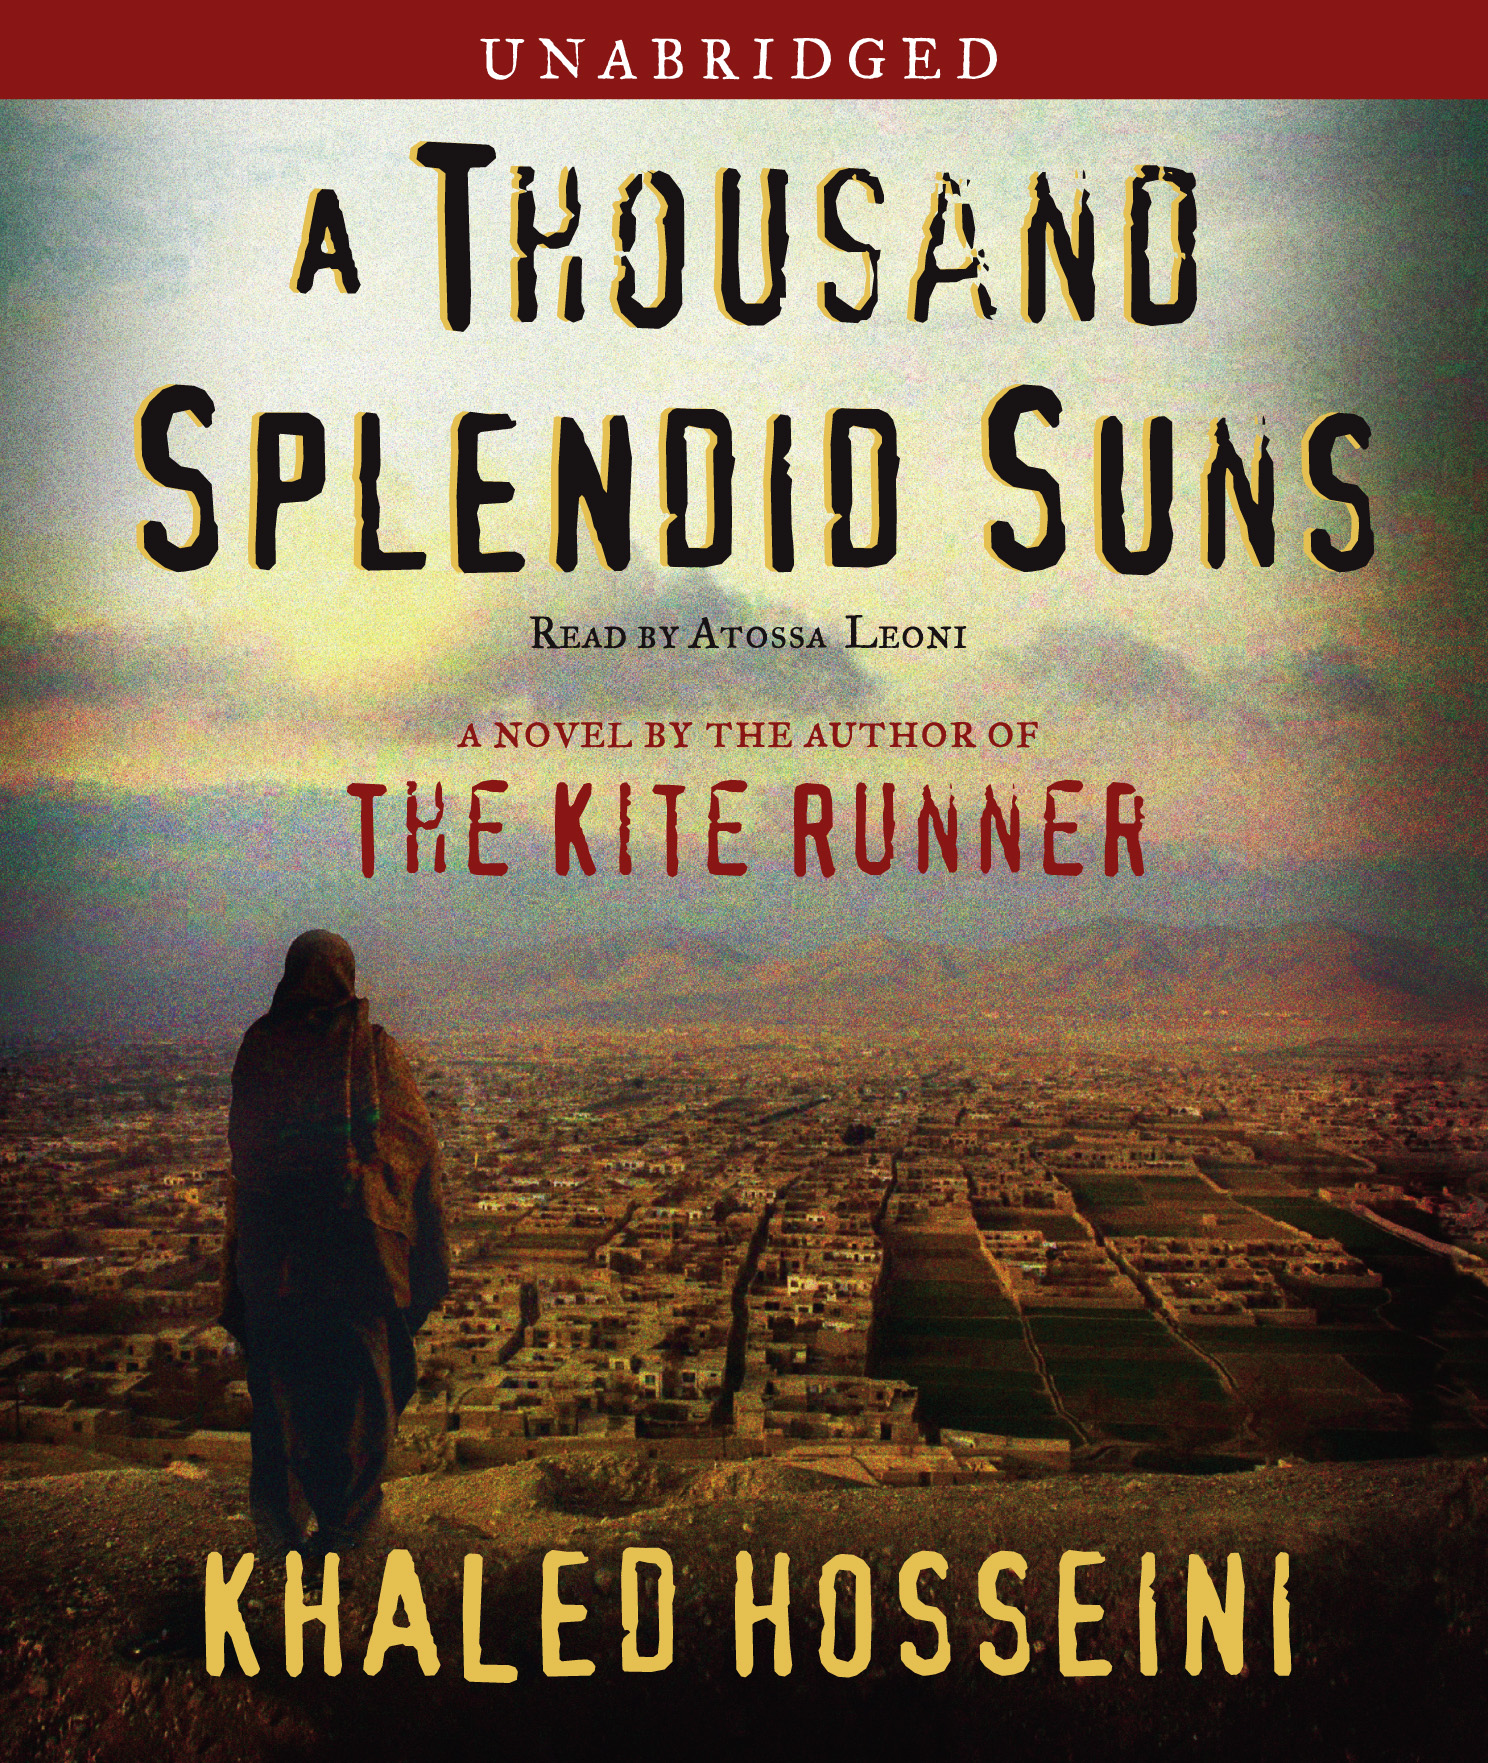 Book Review | A Thousand Splendid Suns by Khaled Hosseini